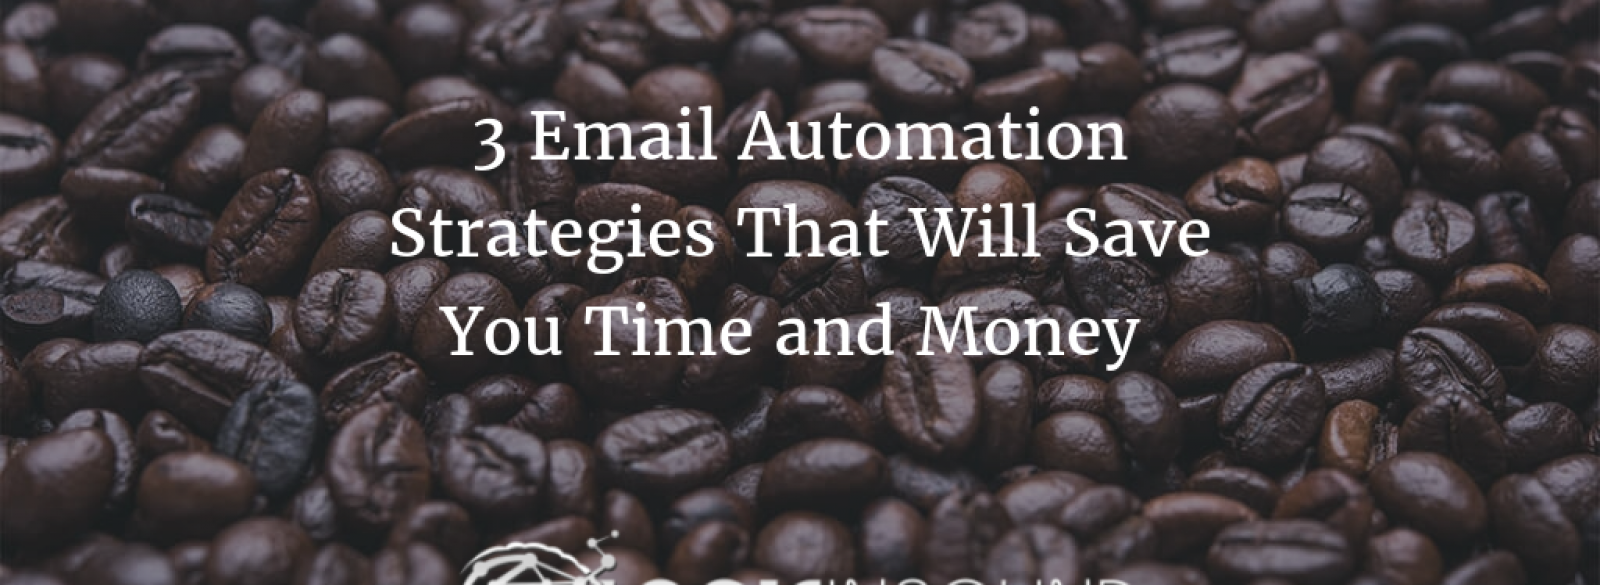 3 Email Automation Strategies That Will Save You Time and Money